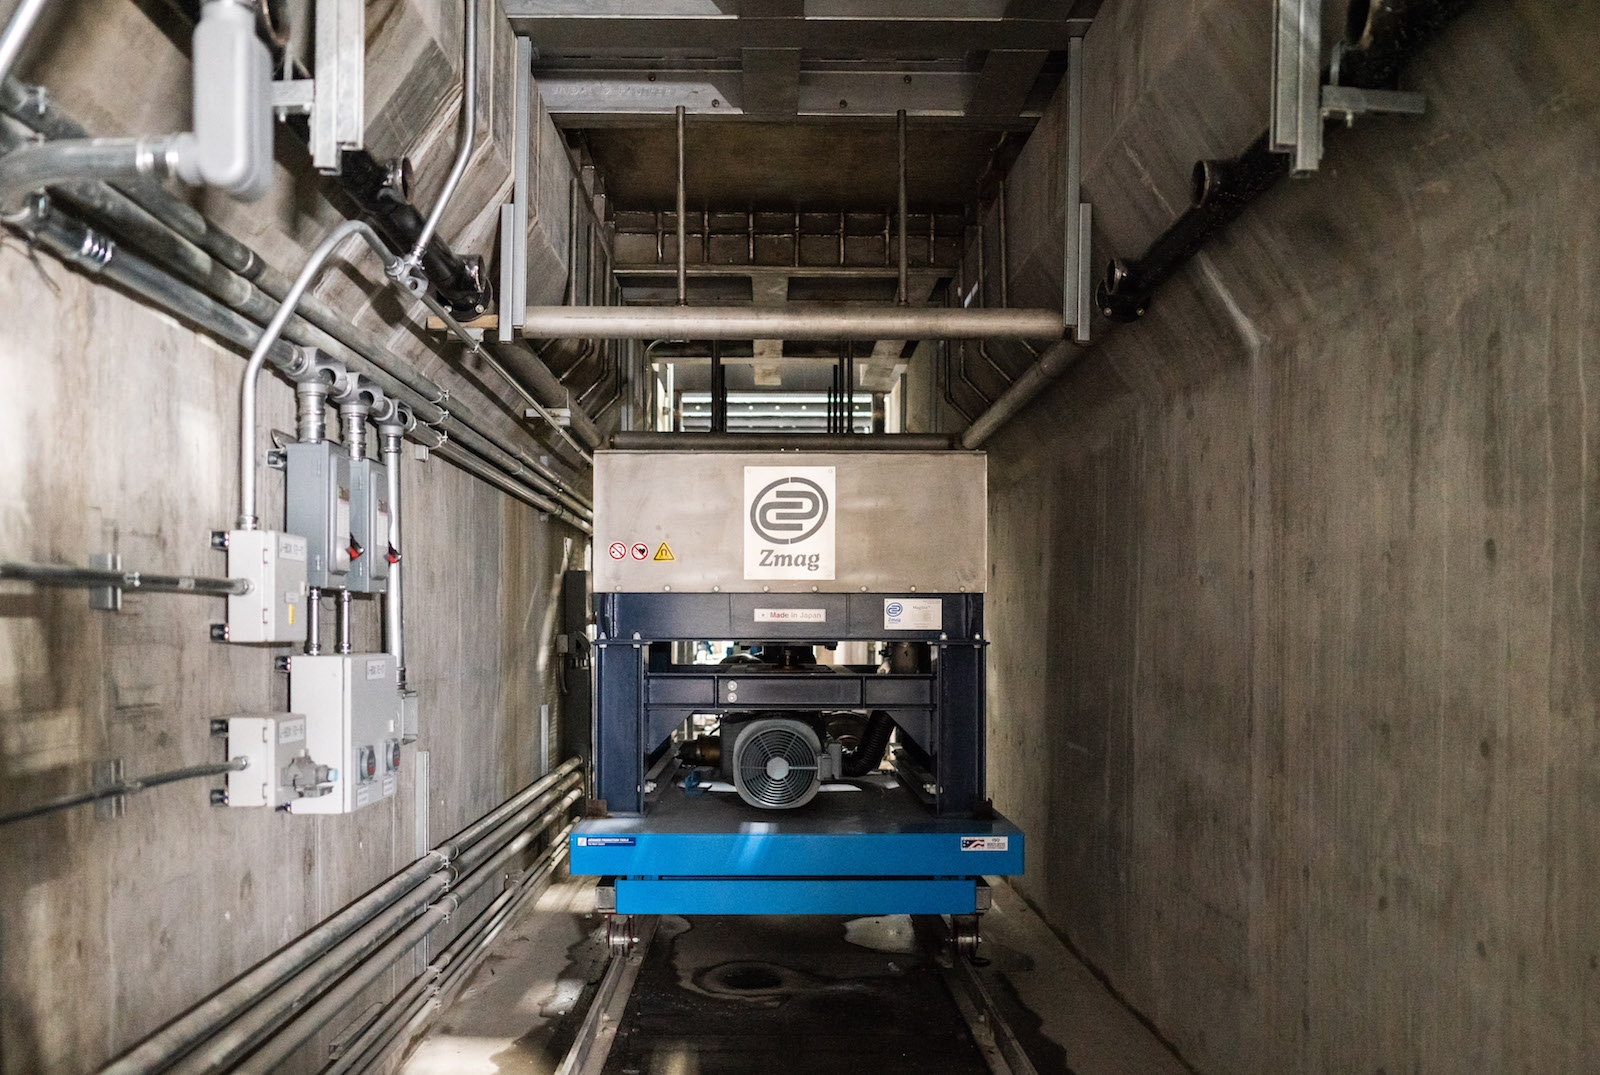 Figure 3. The furnaces are outfitted with a permanent magnet stirrer for improving efficiency of the melting process.